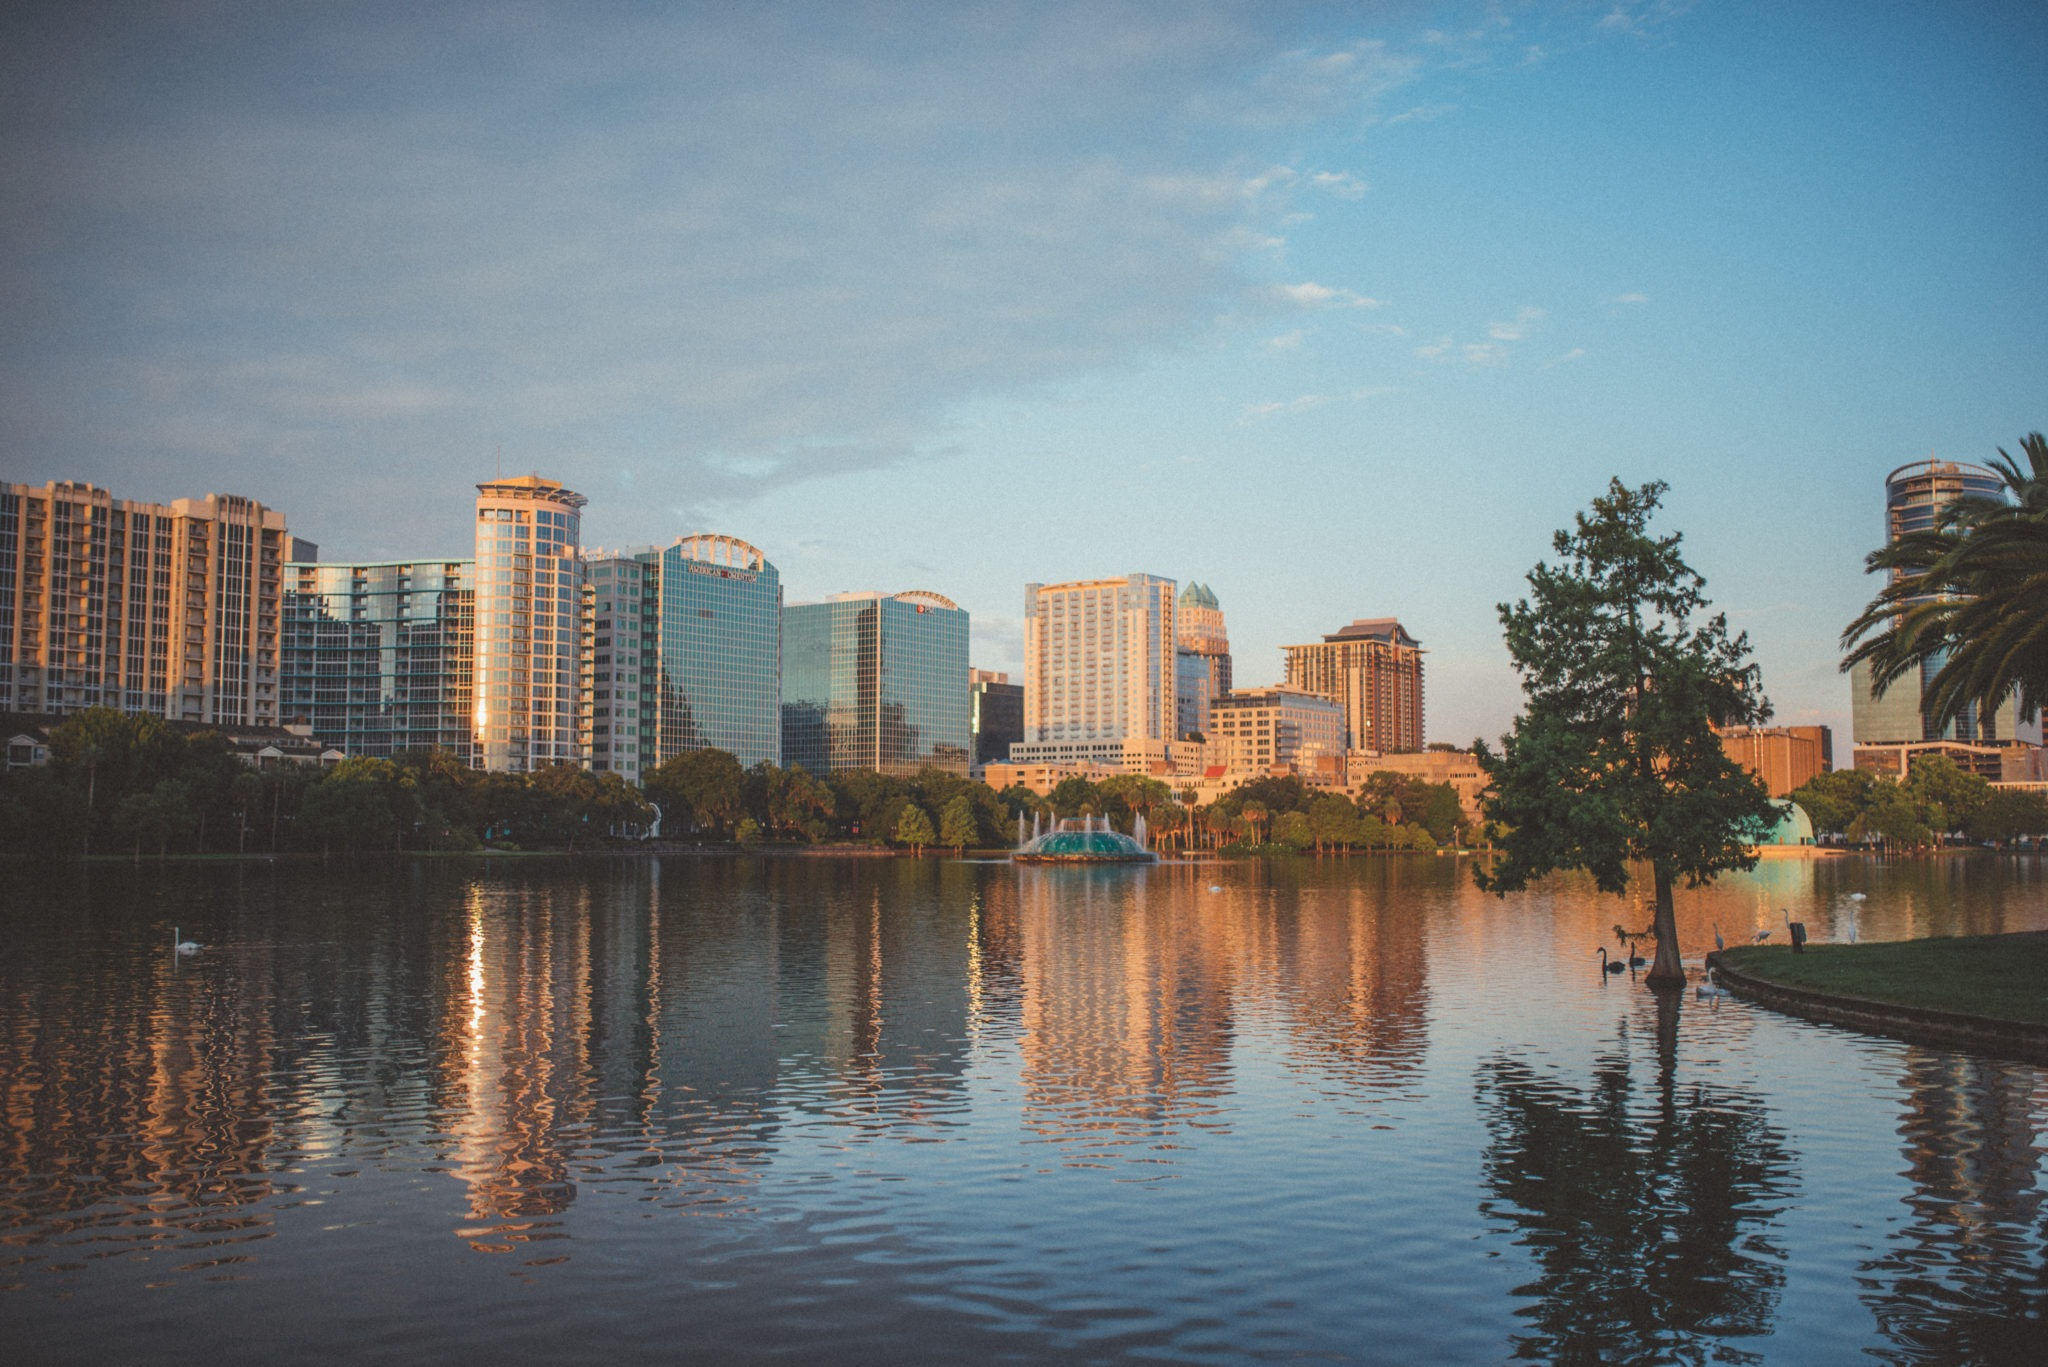 Hotels in Downtown Orlando